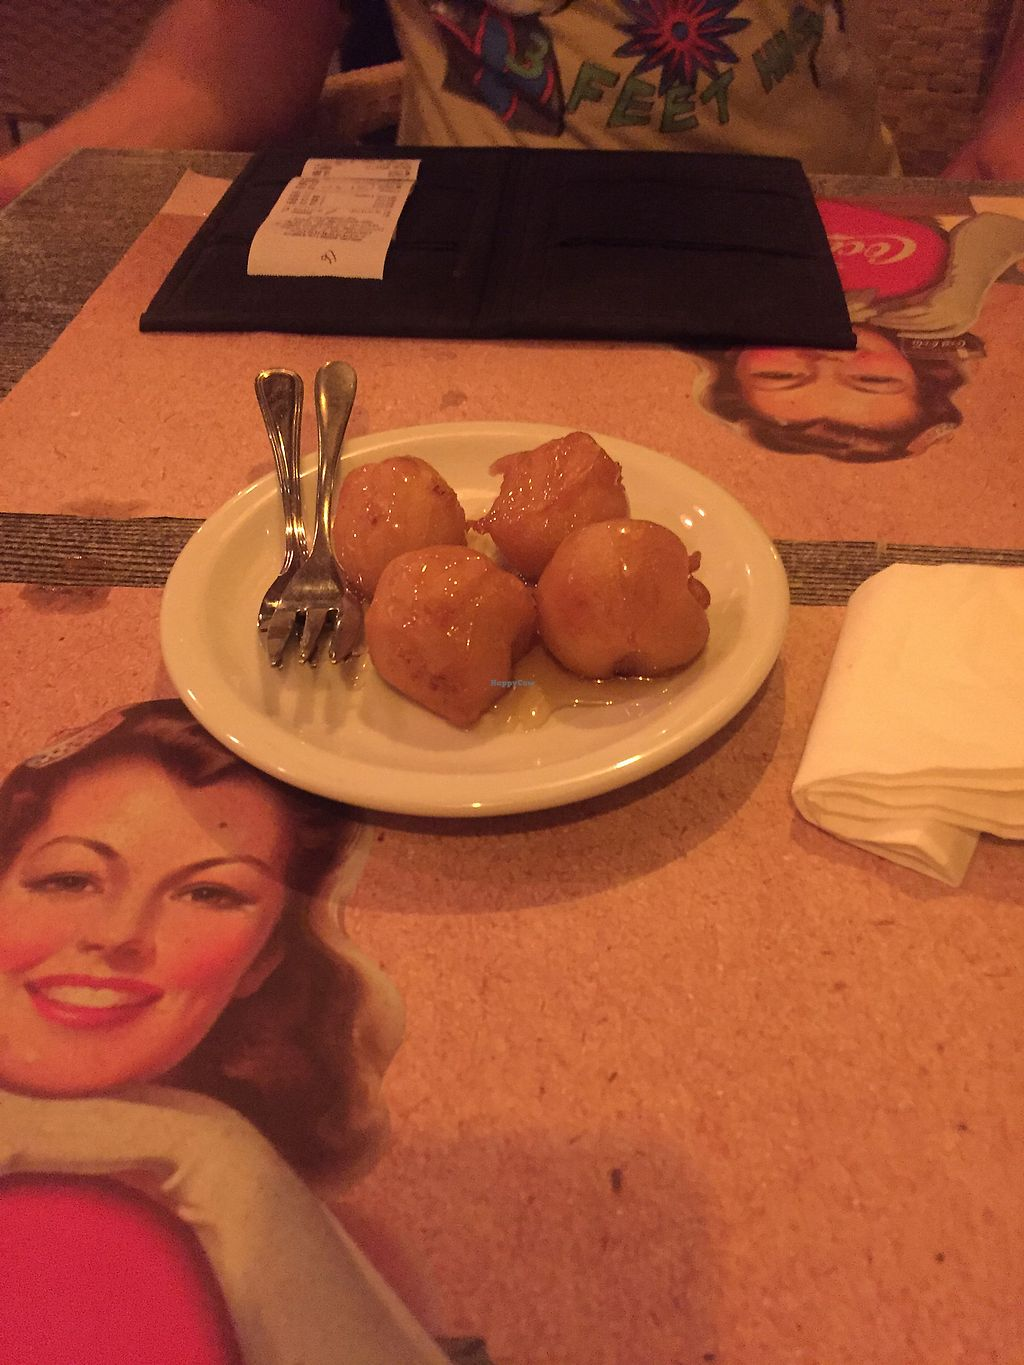 """Photo of Paradox Thai Food and Bar  by <a href=""""/members/profile/SoniaJames"""">SoniaJames</a> <br/>Fried banana  <br/> September 18, 2017  - <a href='/contact/abuse/image/96811/305822'>Report</a>"""